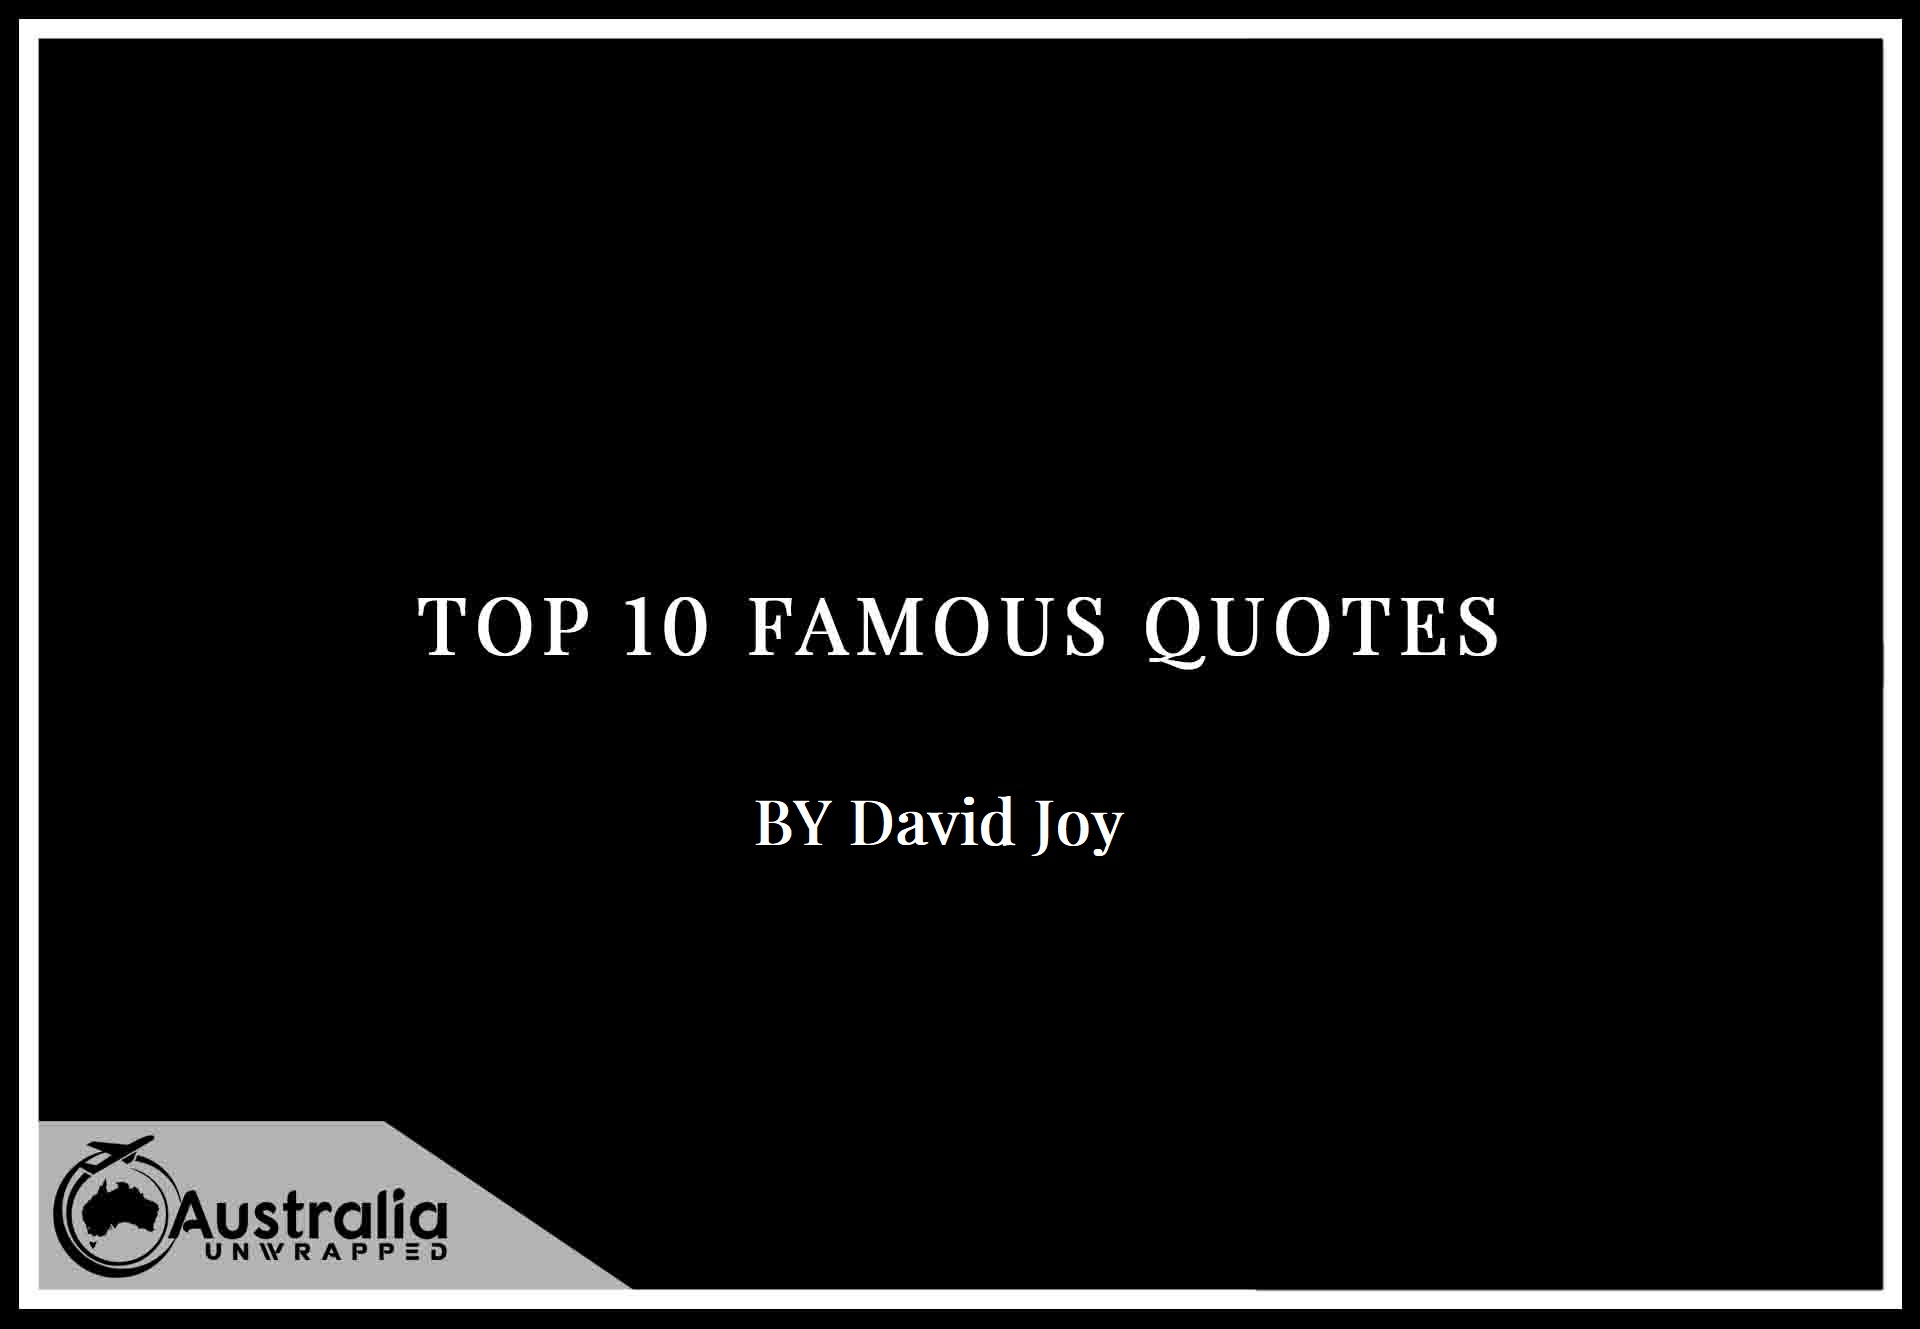 Top 10 Famous Quotes by Author David Joy